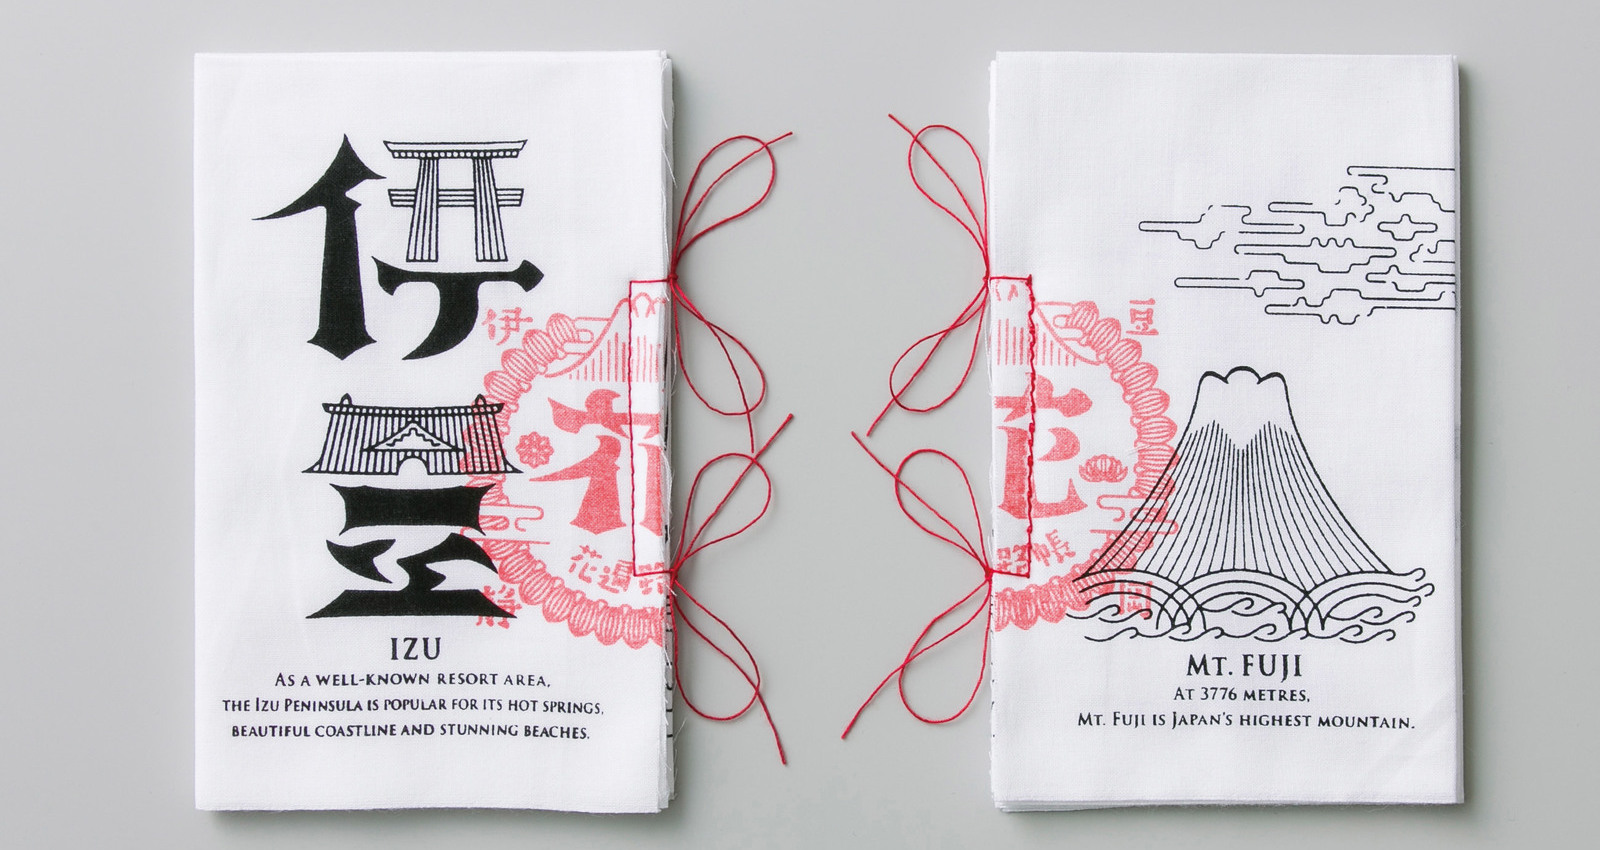 Stamp Passport Book for Izu Peninsula